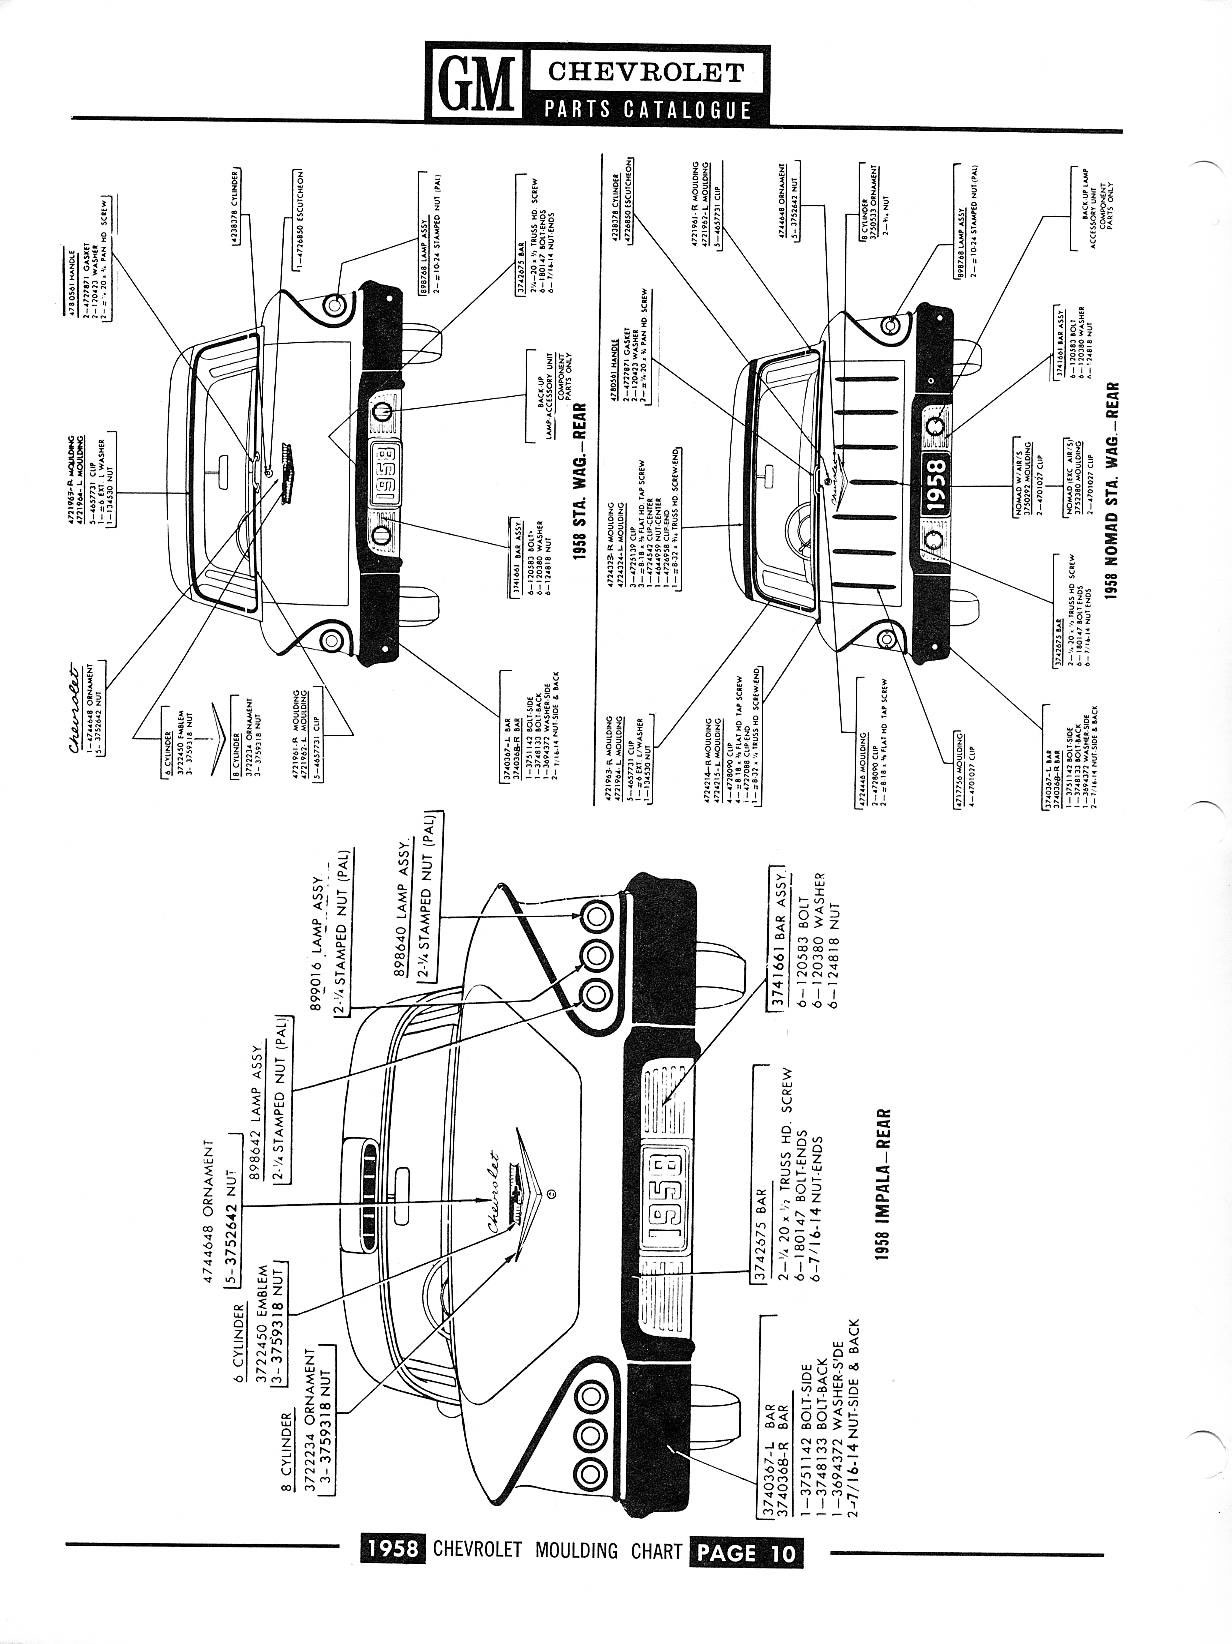 Fuse Box Picture For 58 Chevy Biscayne Auto Electrical Wiring Diagram 1958 Related With